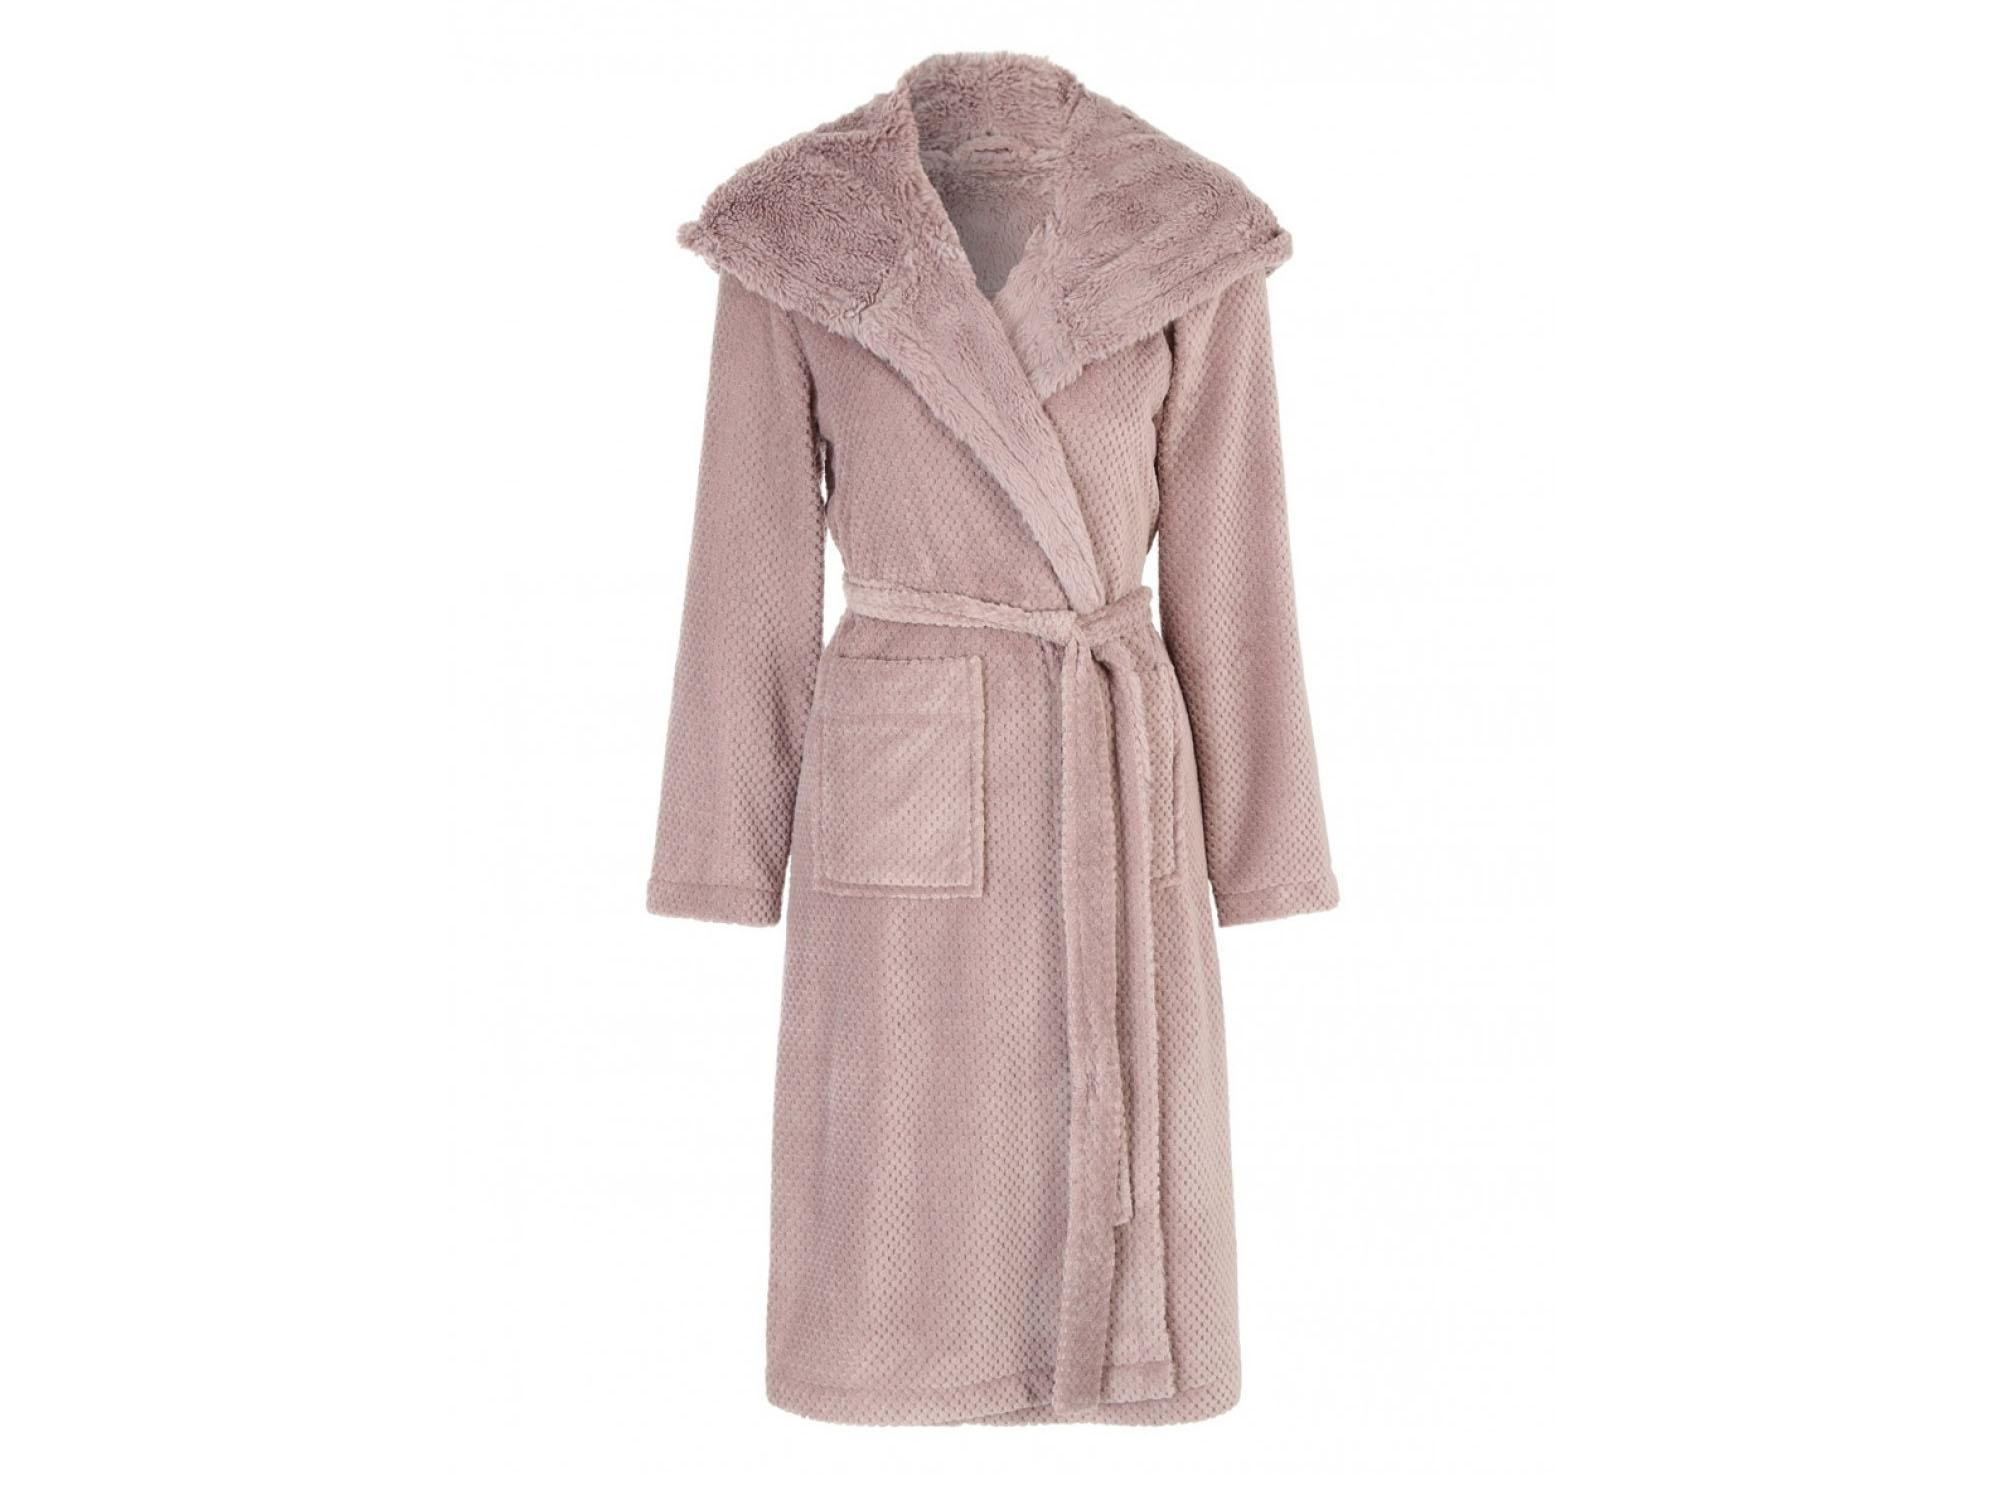 The Bohemian Dressing Gown reflects the best we have to offer: